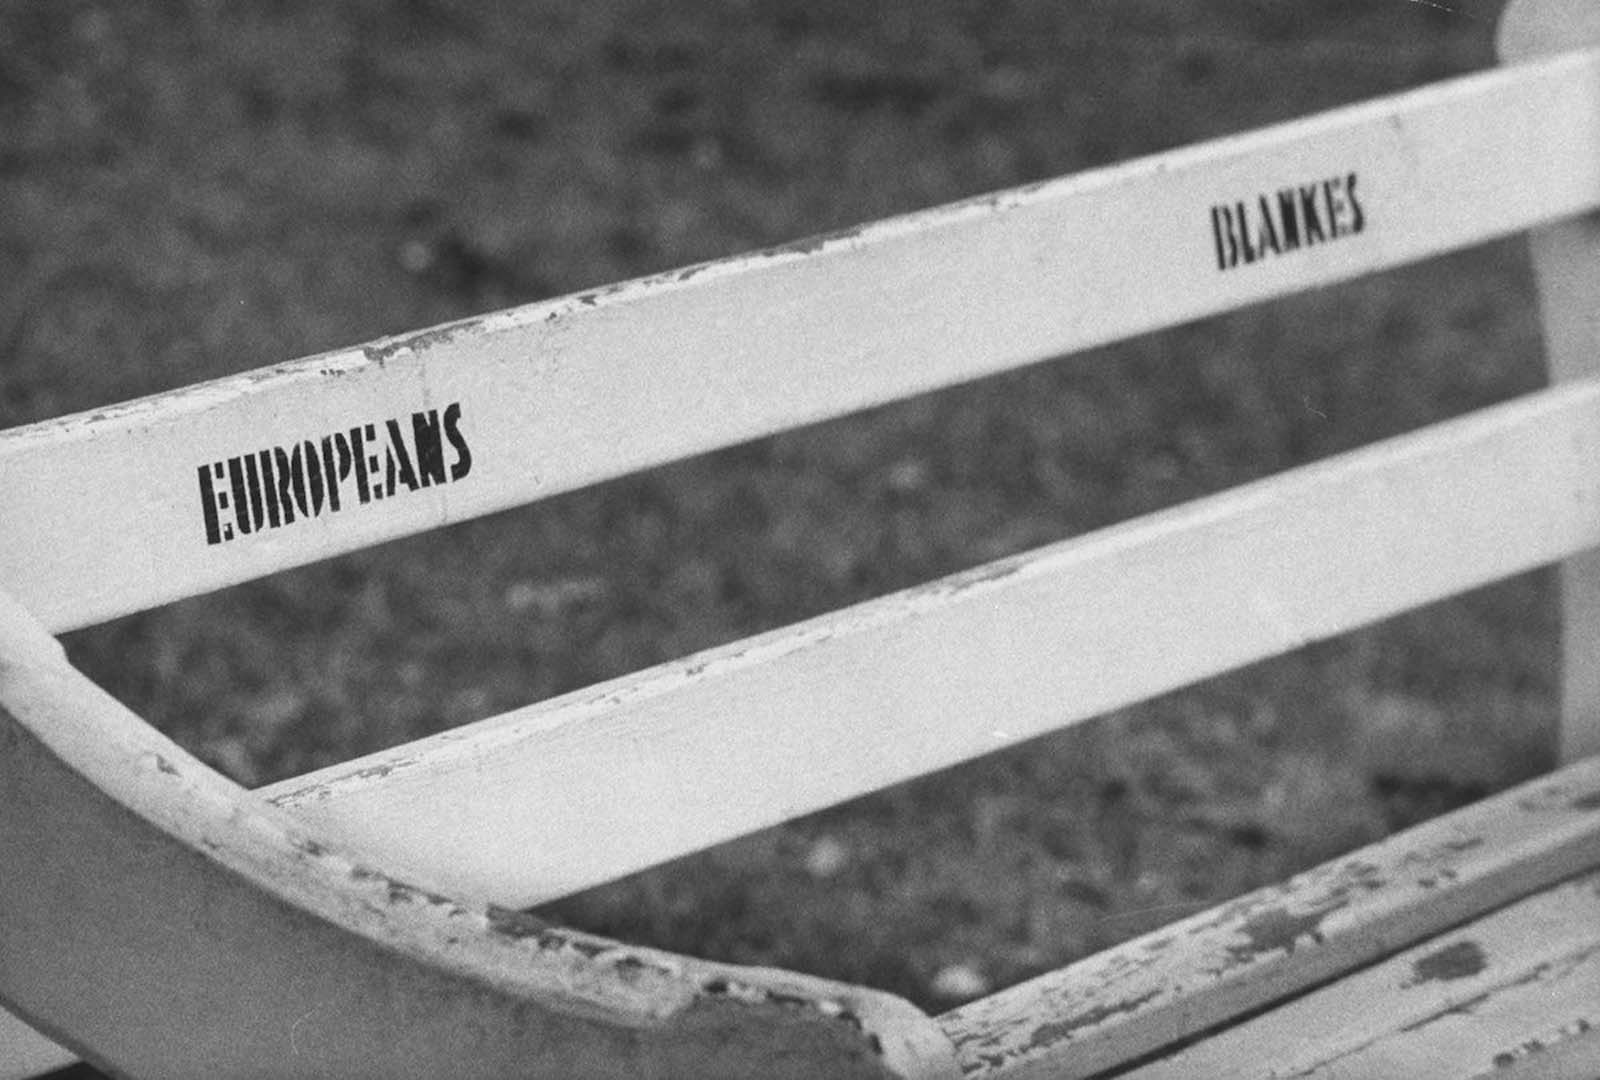 A bench in Albert Park, Durban. 1960.